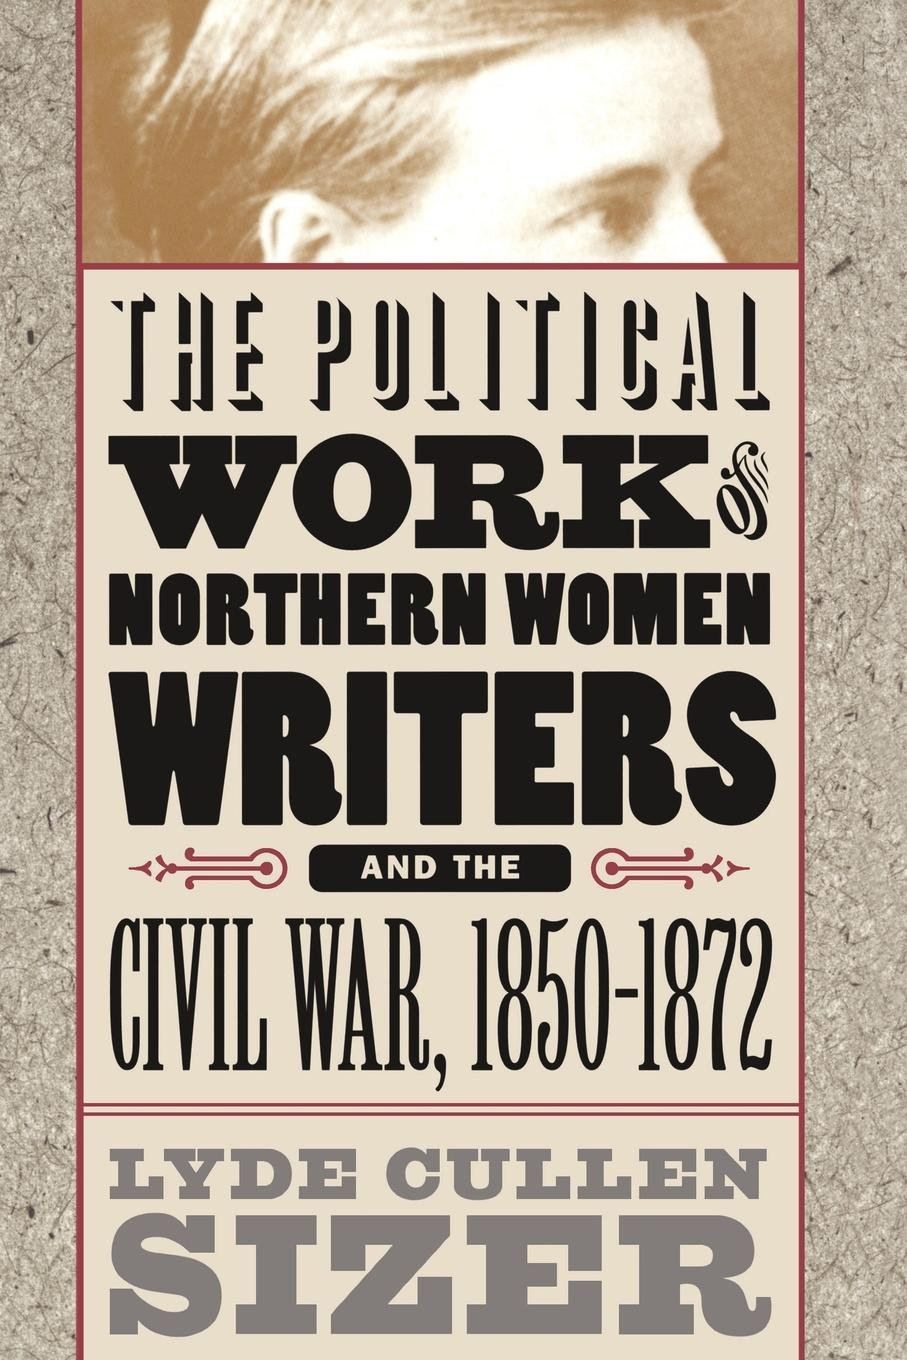 Download The Political Work of Northern Women Writers and the Civil War, 1850-1872 (Civil War America) PDF